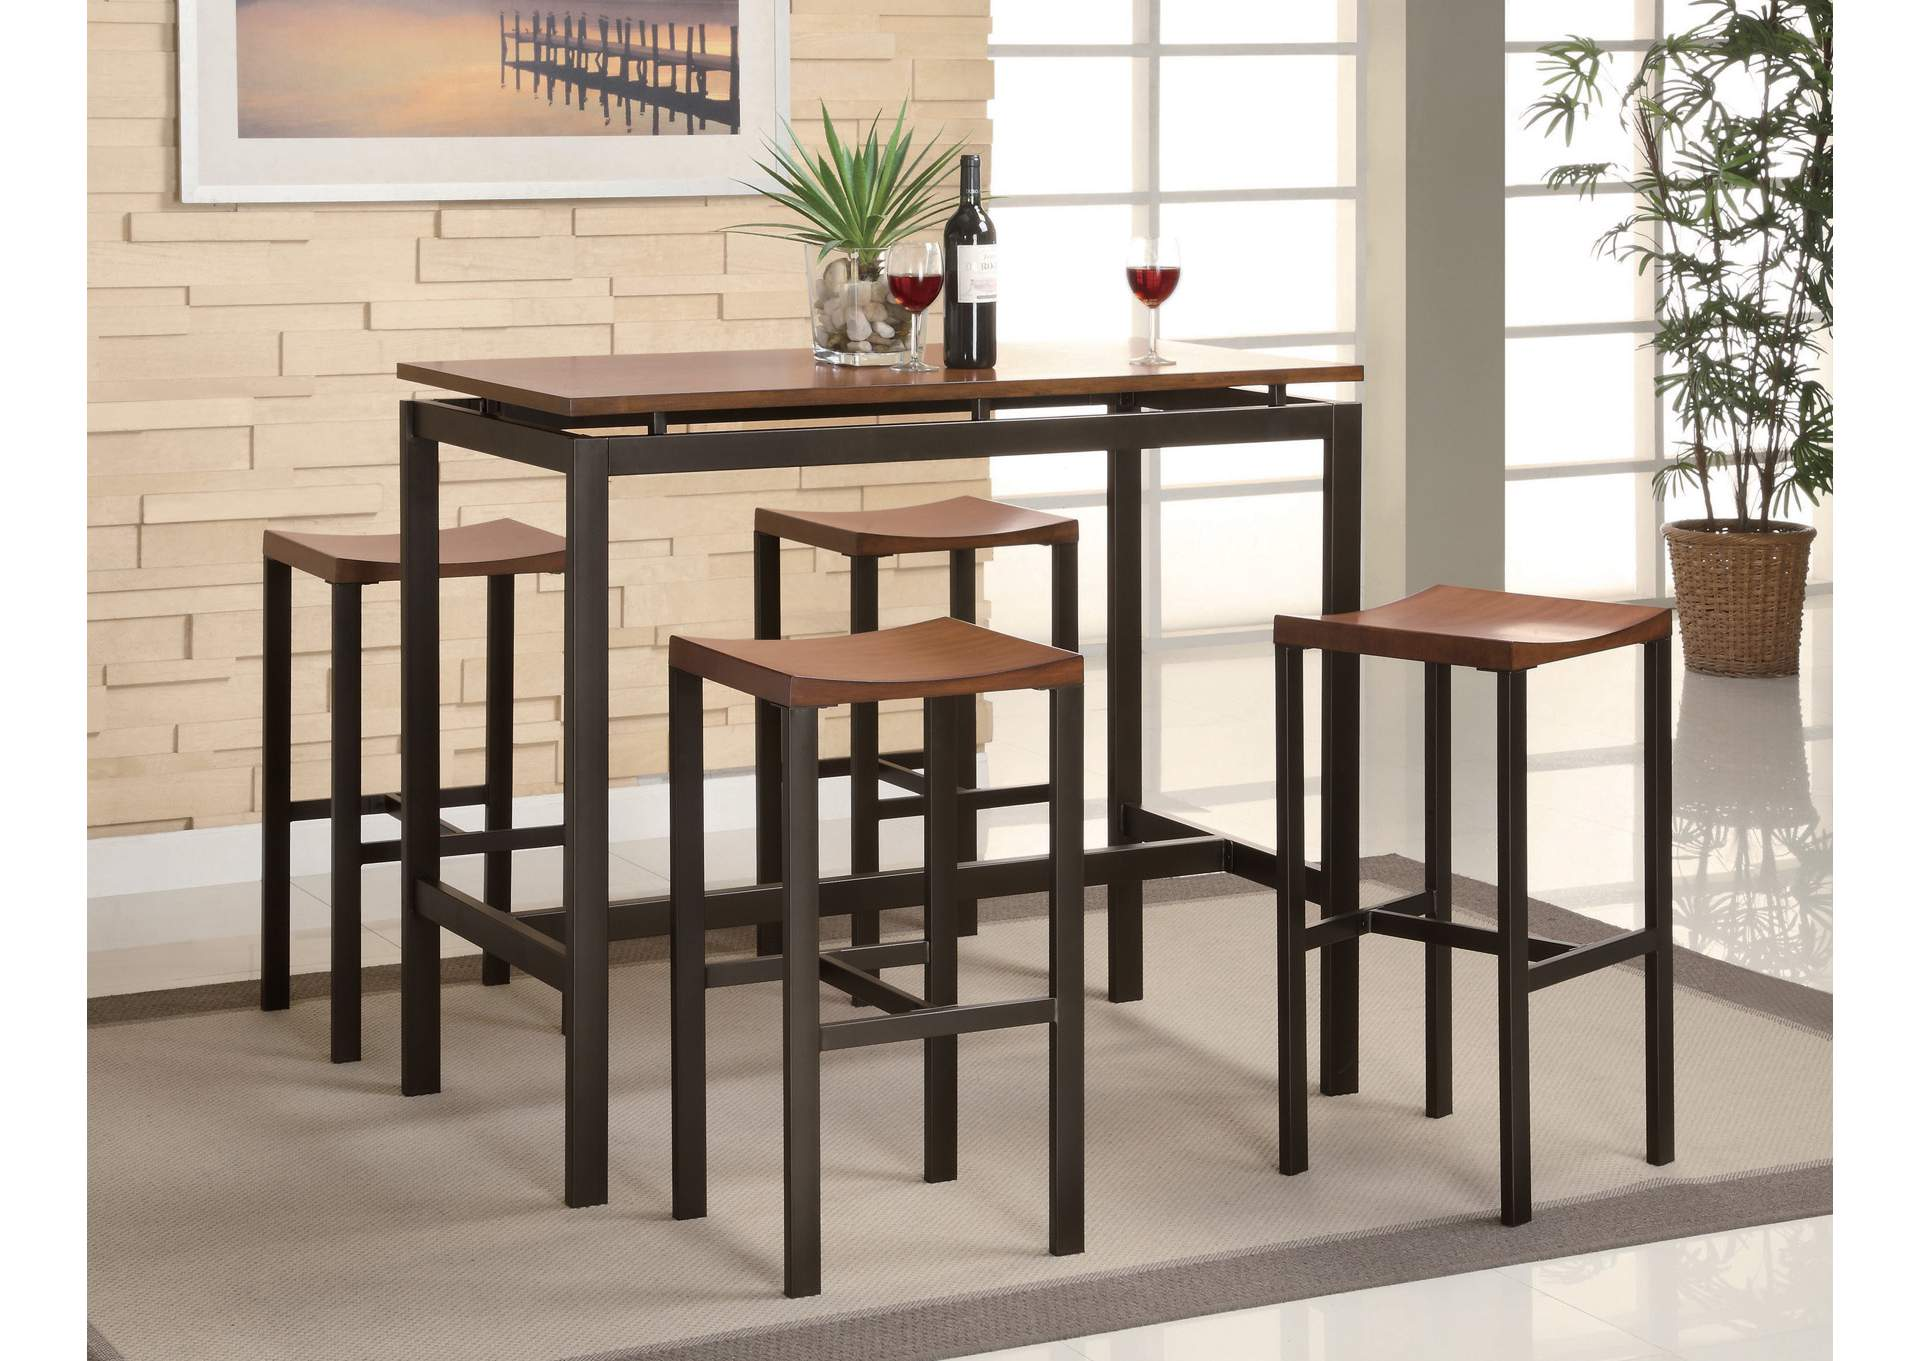 Atlas Black 5 Pc Set,Coaster Furniture